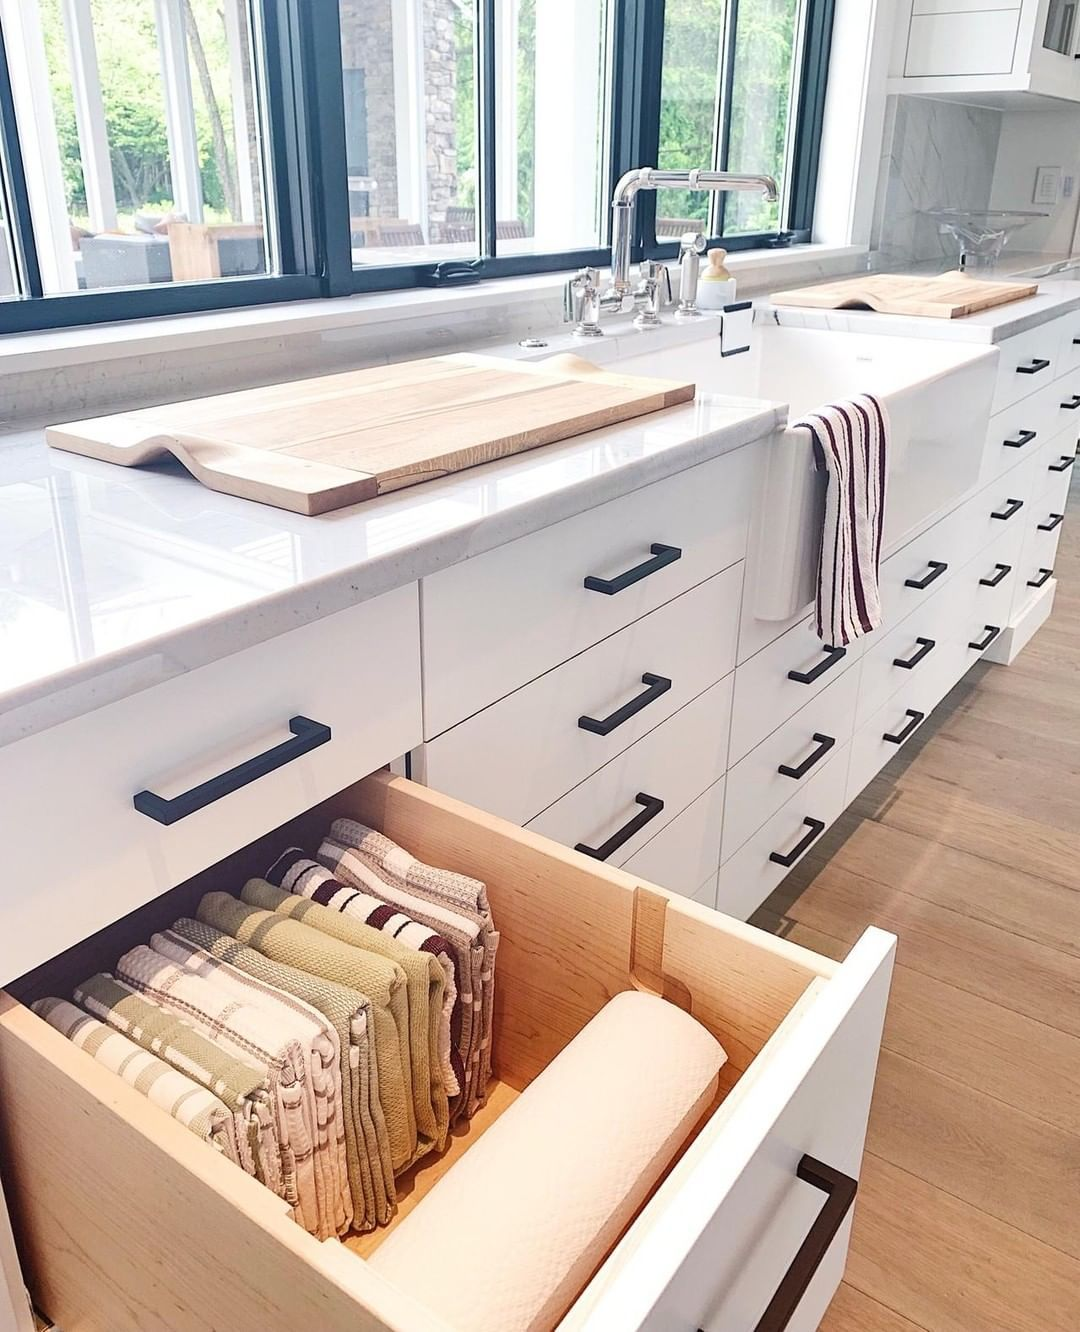 Neat Method On Instagram Another Genius Kitchen Idea From A Client S Home A Built In Paper Towel Paper Towel Holder Kitchen Remodel Kitchen Inspirations